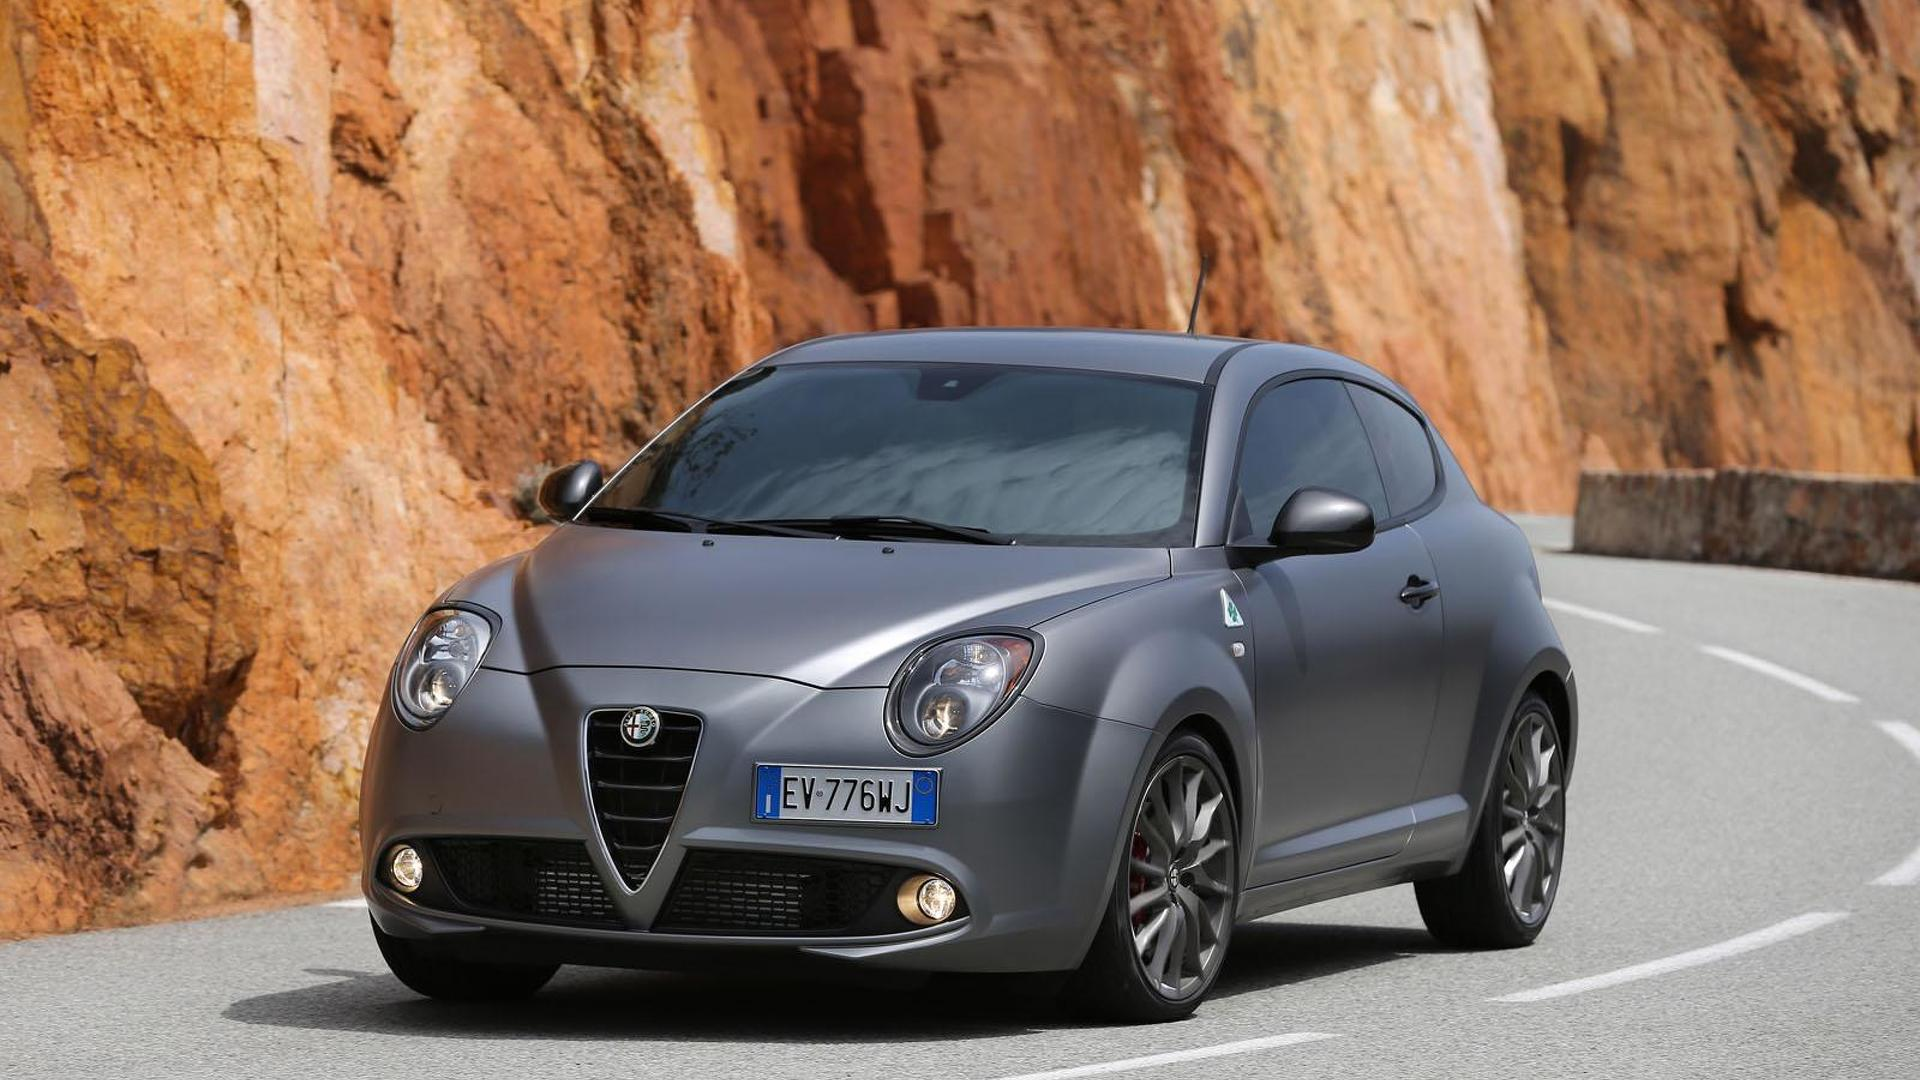 Alfa Romeo Mito >> Alfa Romeo Mito Giulietta Quadrifoglio Verde Headed To Goodwood